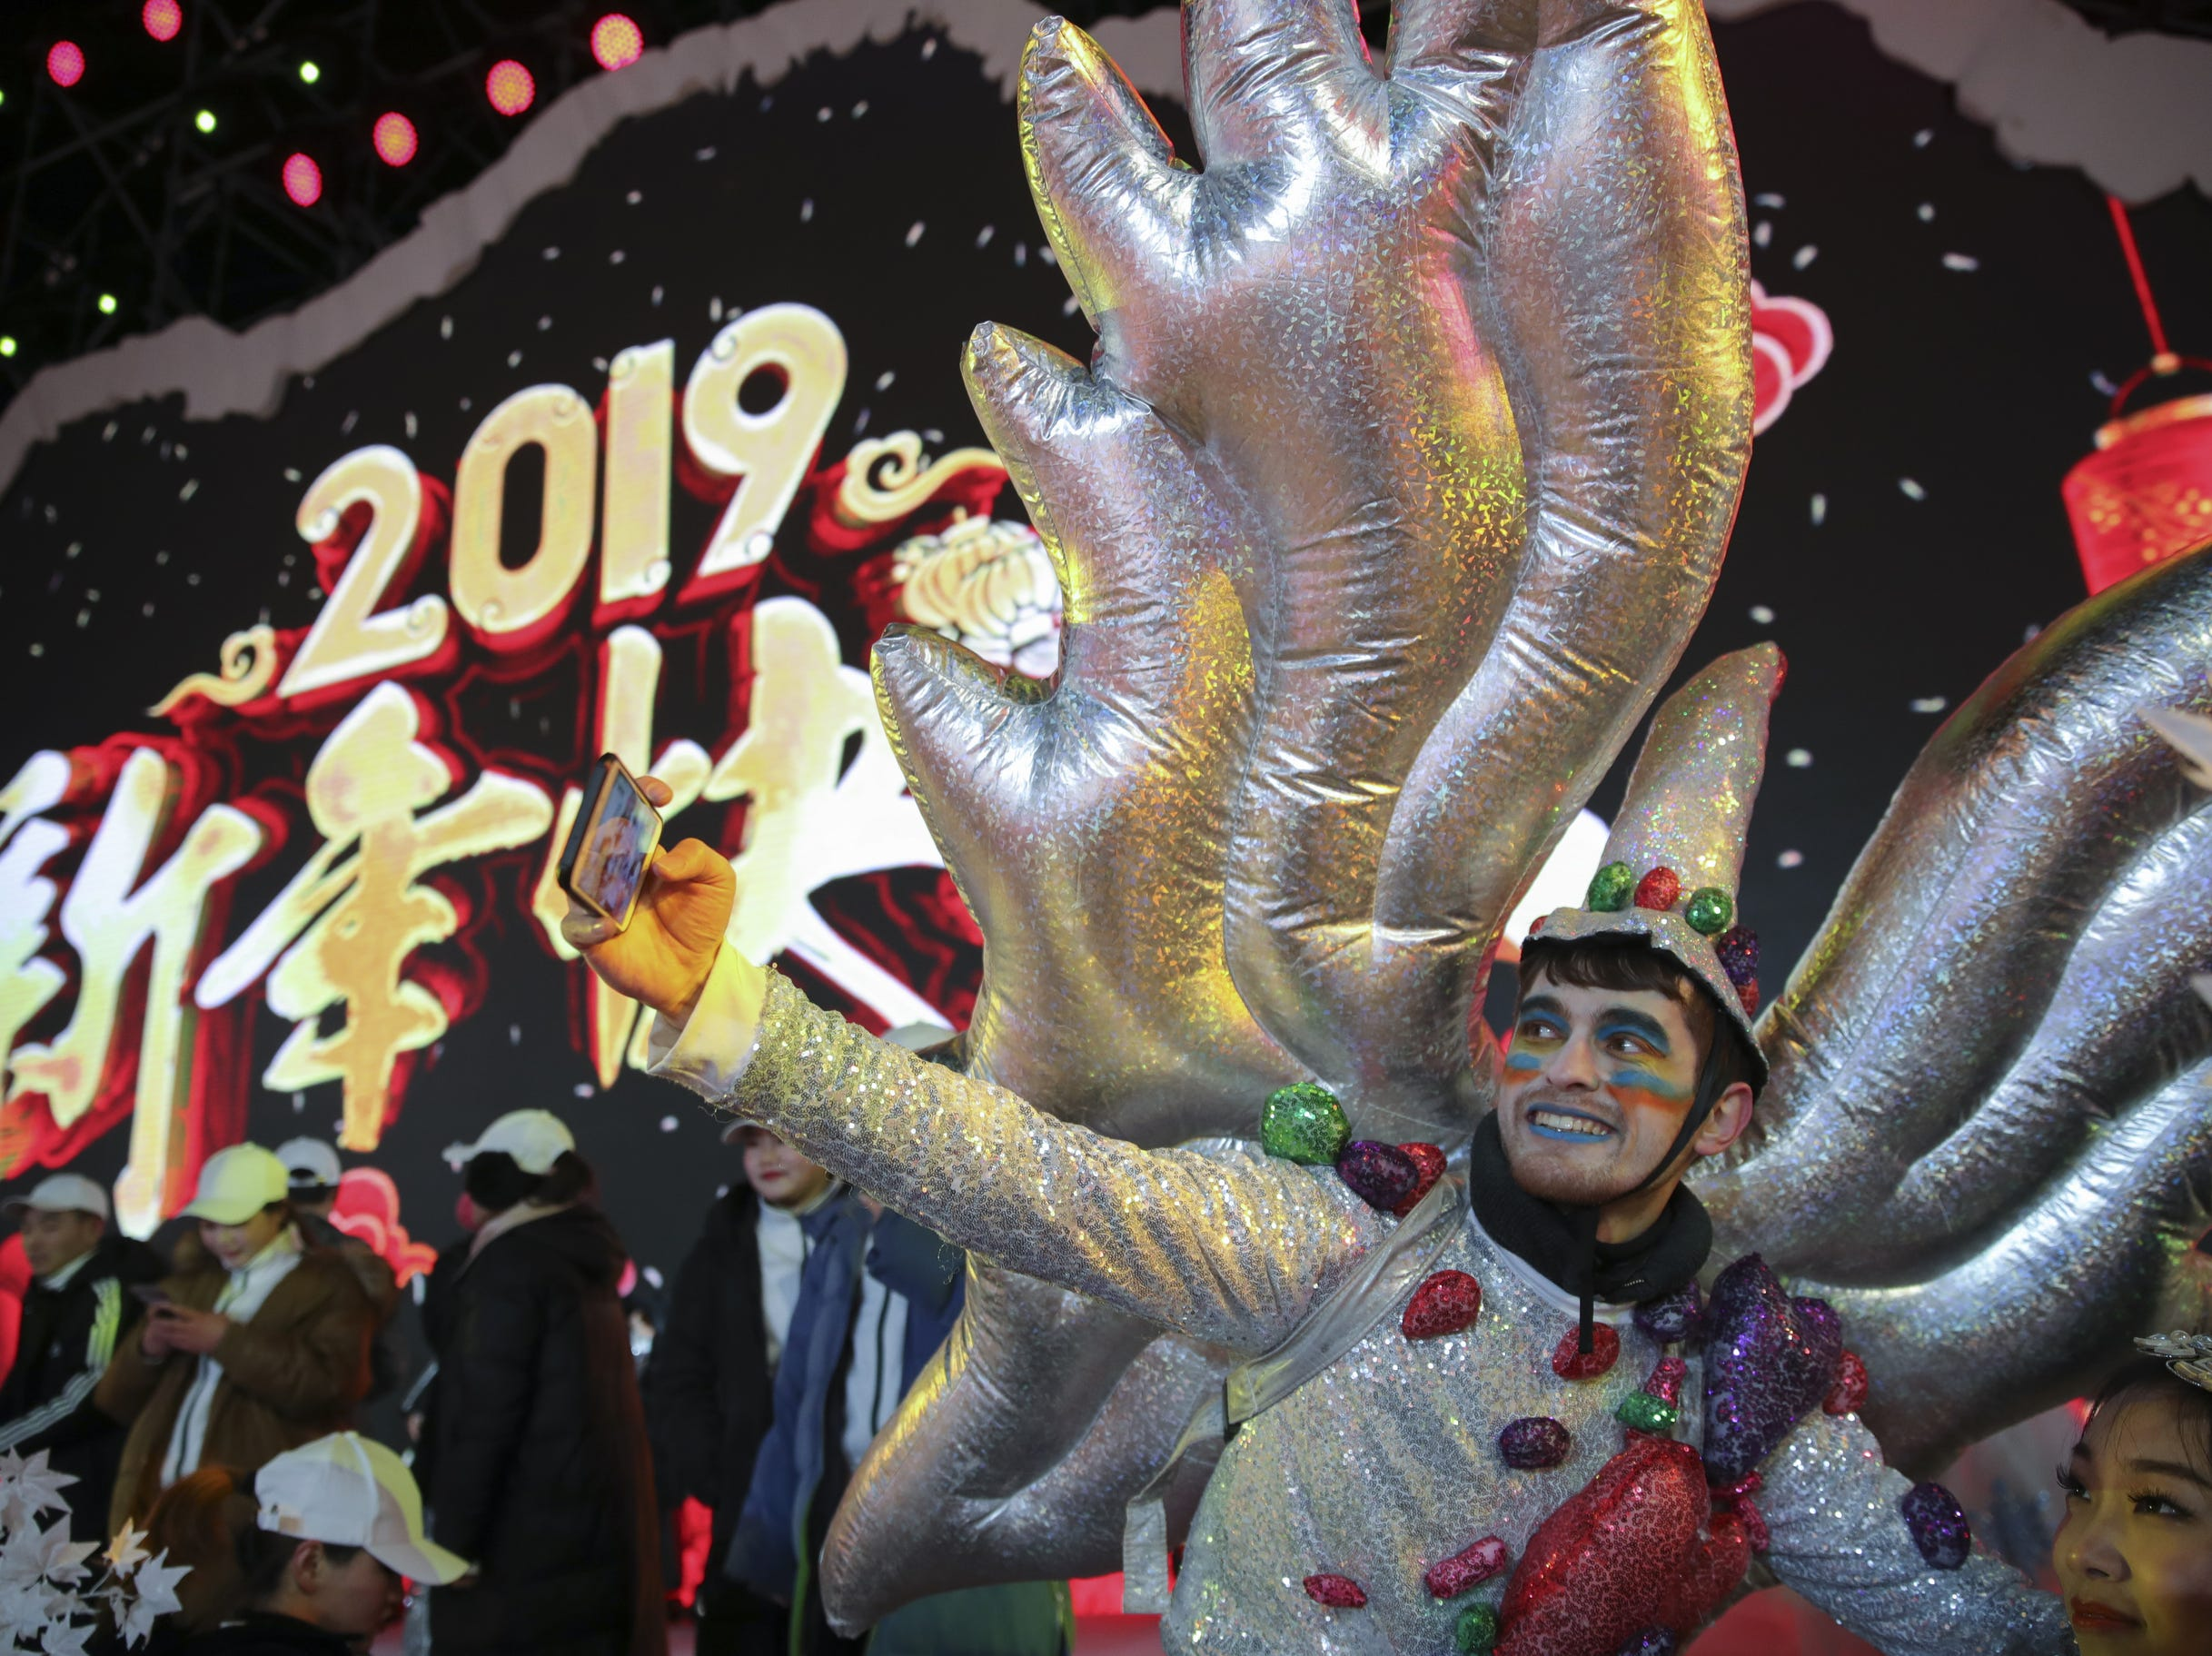 Chinese people celebrate the New Year during the New Year's Eve in Beijing, China.